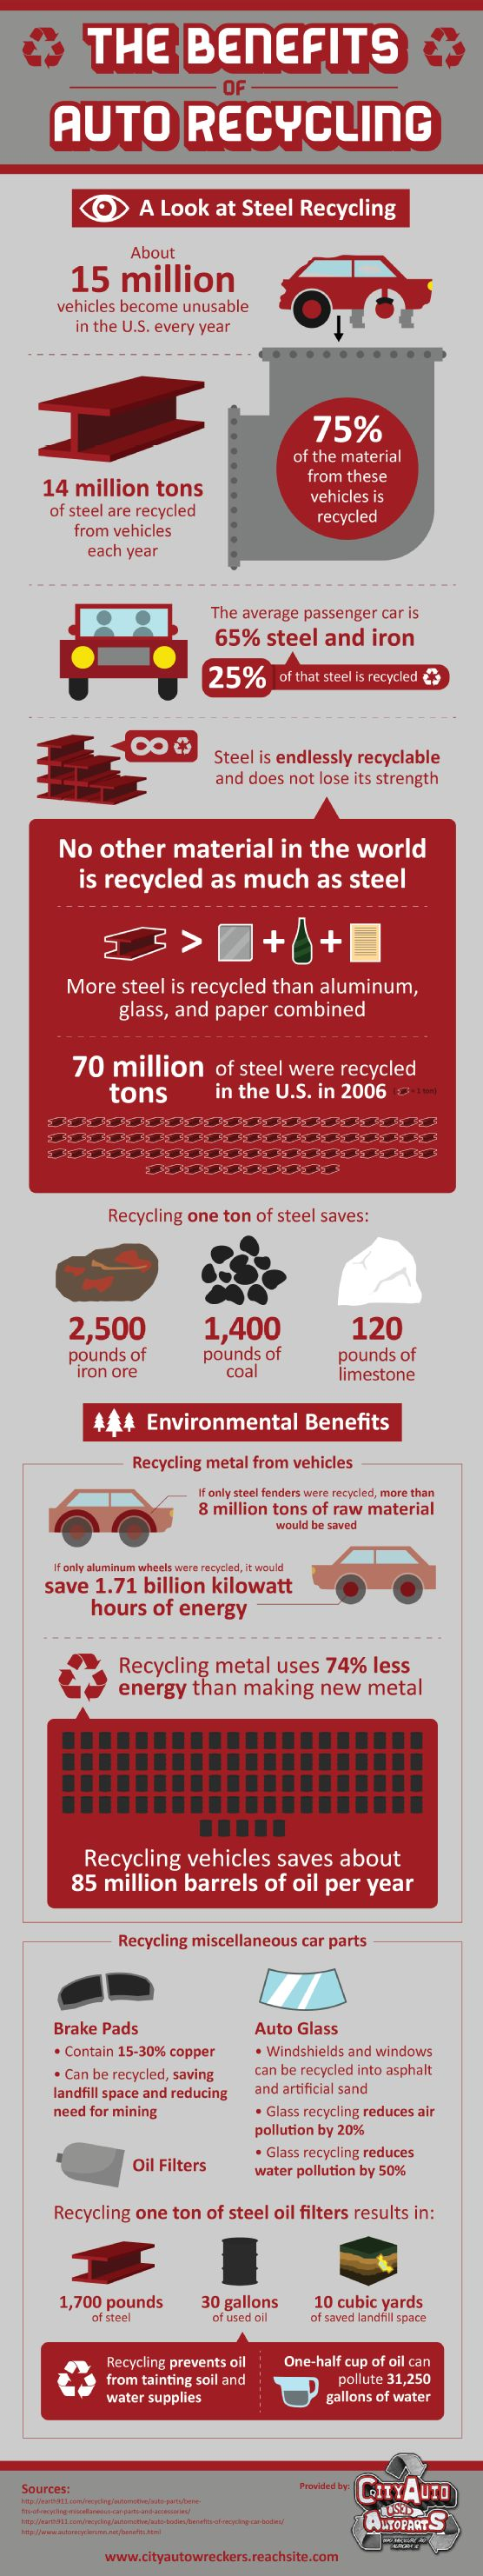 We can save 1.71 billion kilowatt hours of energy by recycling the aluminum wheels found in unused vehicles according to this infographic.